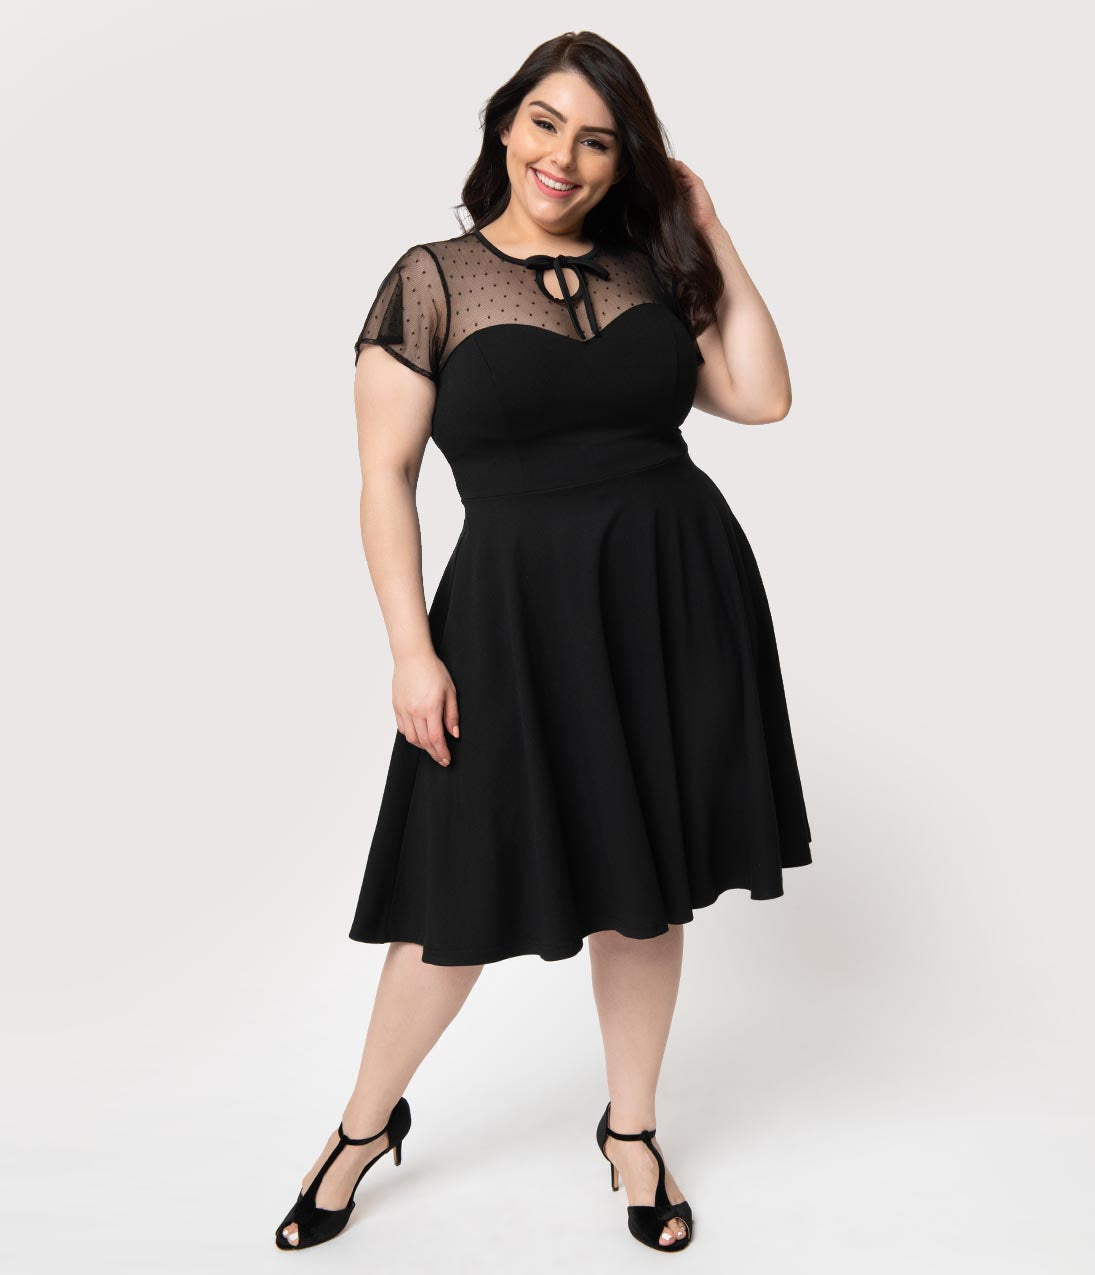 1940s Dresses | 40s Dress, Swing Dress Unique Vintage Plus Size 1940S Style Black Swiss Dotted Mesh Heather Midi Dress $98.00 AT vintagedancer.com